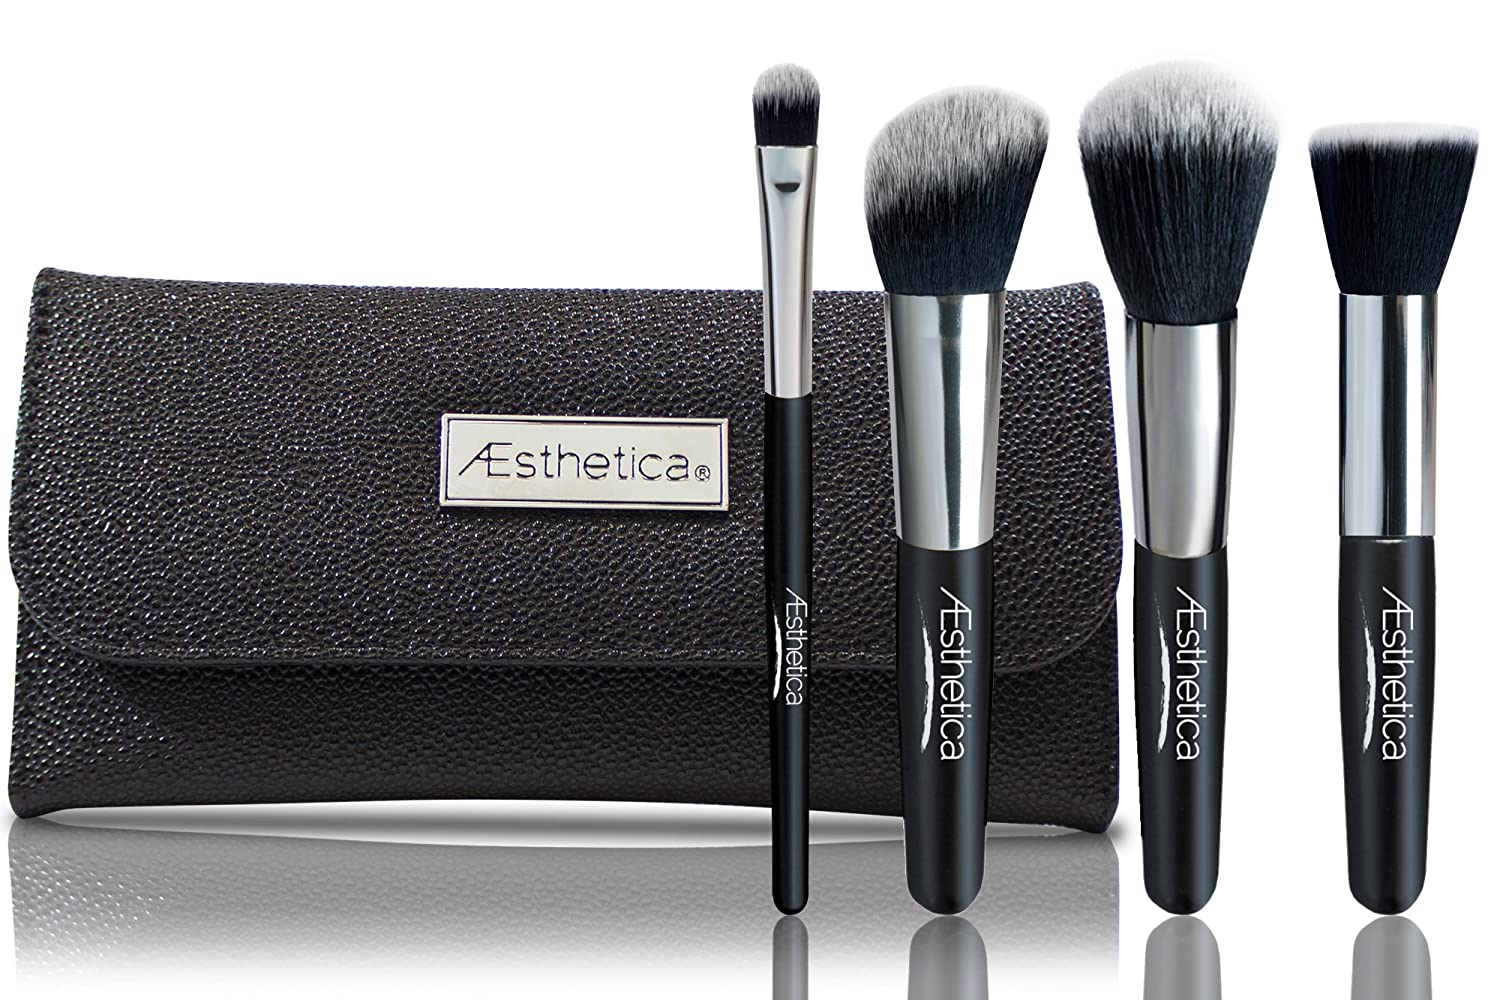 Aesthetica Cosmetics 4-Piece Premium Synthetic Contour and Highlight Makeup Brush Set for Powder, Foundation, Blending, Contouring and Highlighting Includes Carry Case- Vegan and Cruelty Free